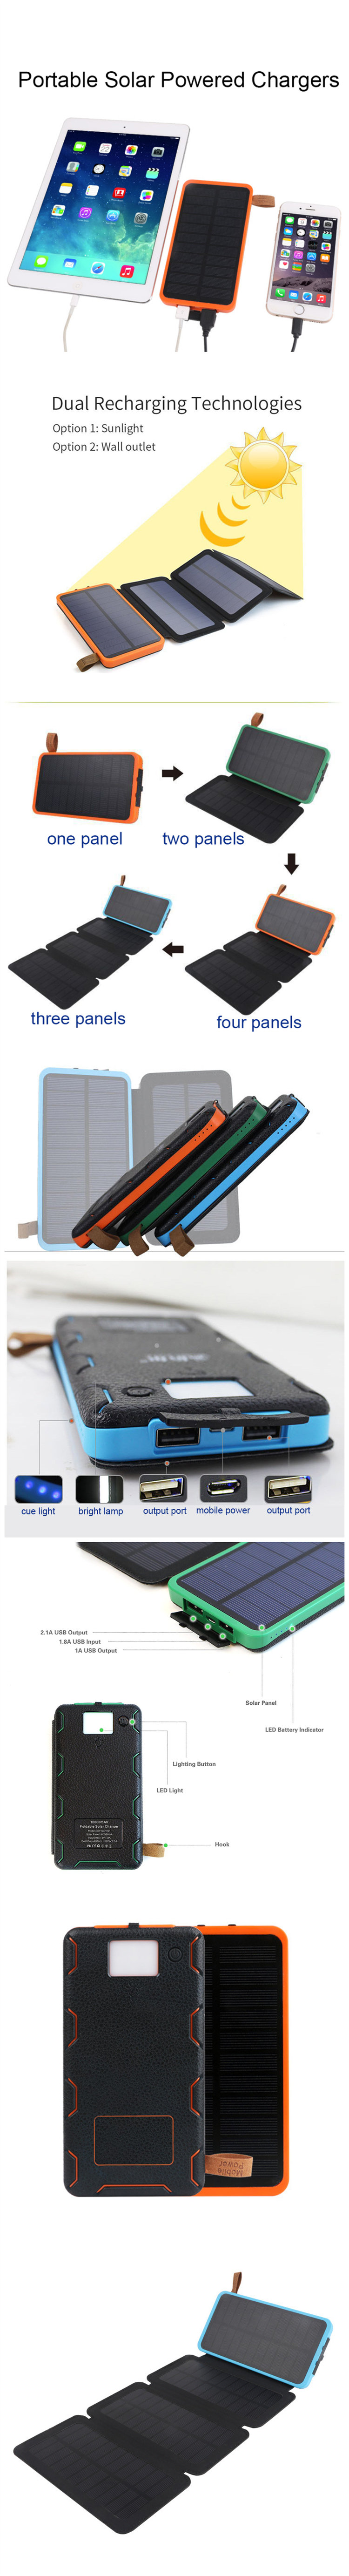 Dual recharging 10000mah Camping Cell Phone Mobile Portable Power Bank solar Panel Usb Foldable Solar Charger